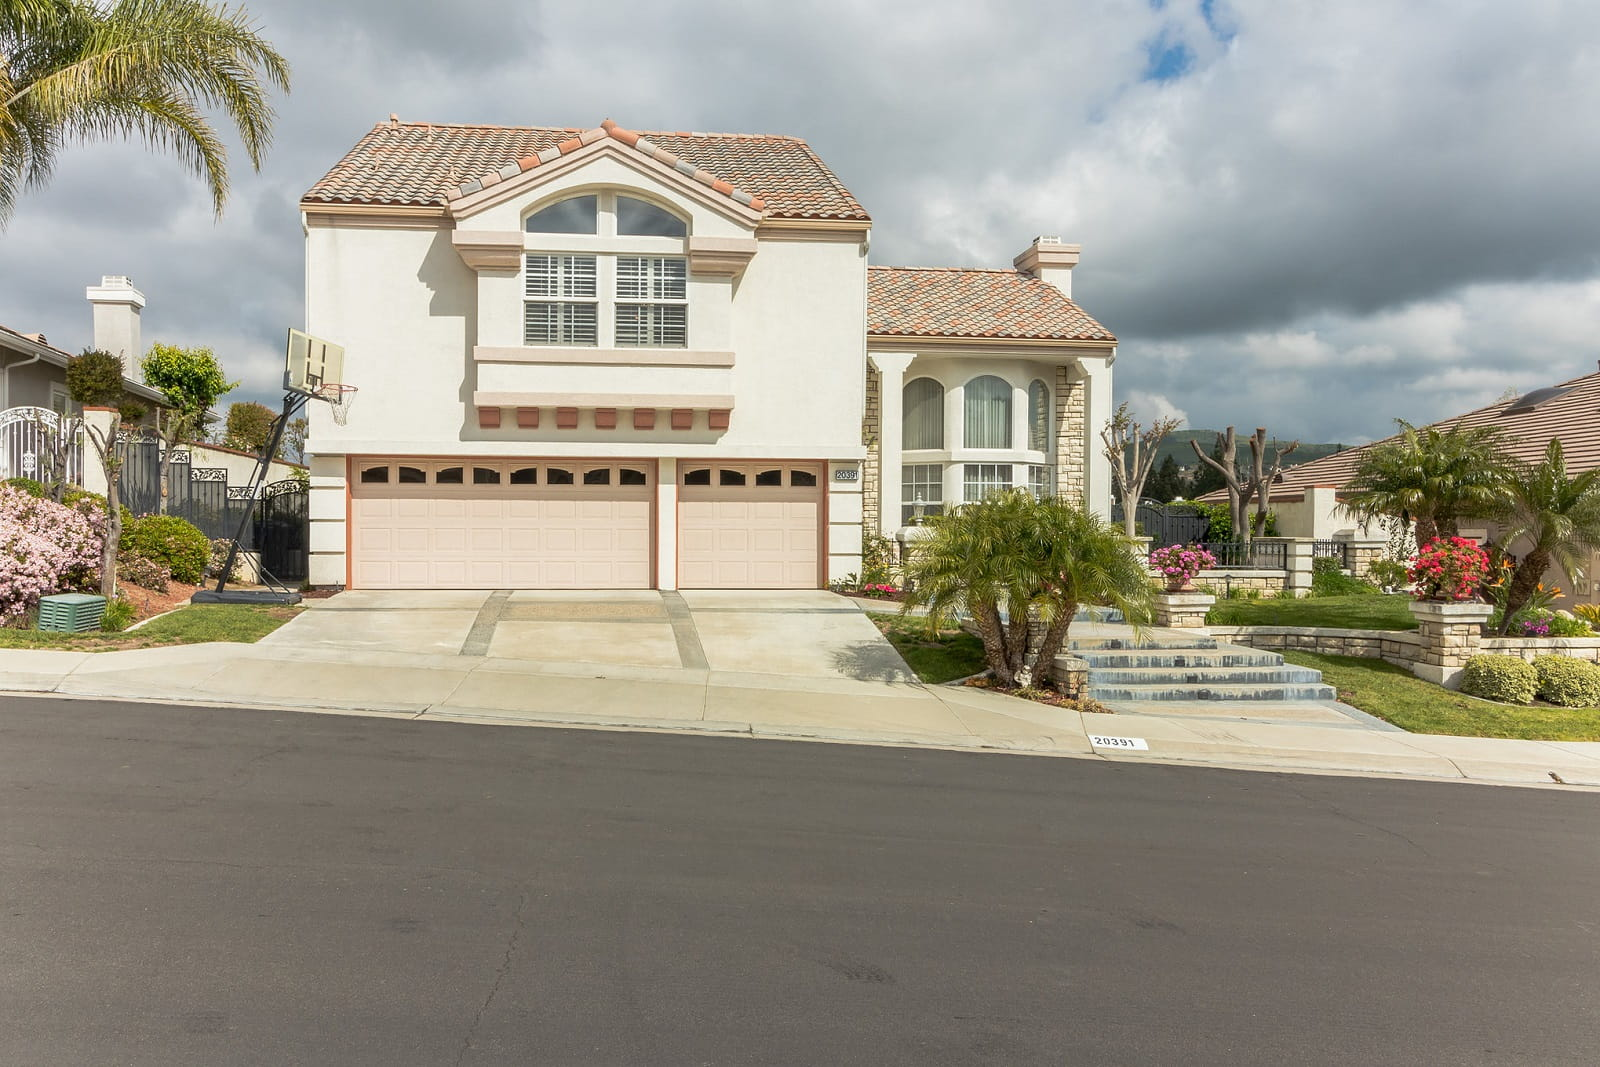 Real Estate Photography in Anaheim - CA - USA - Front View